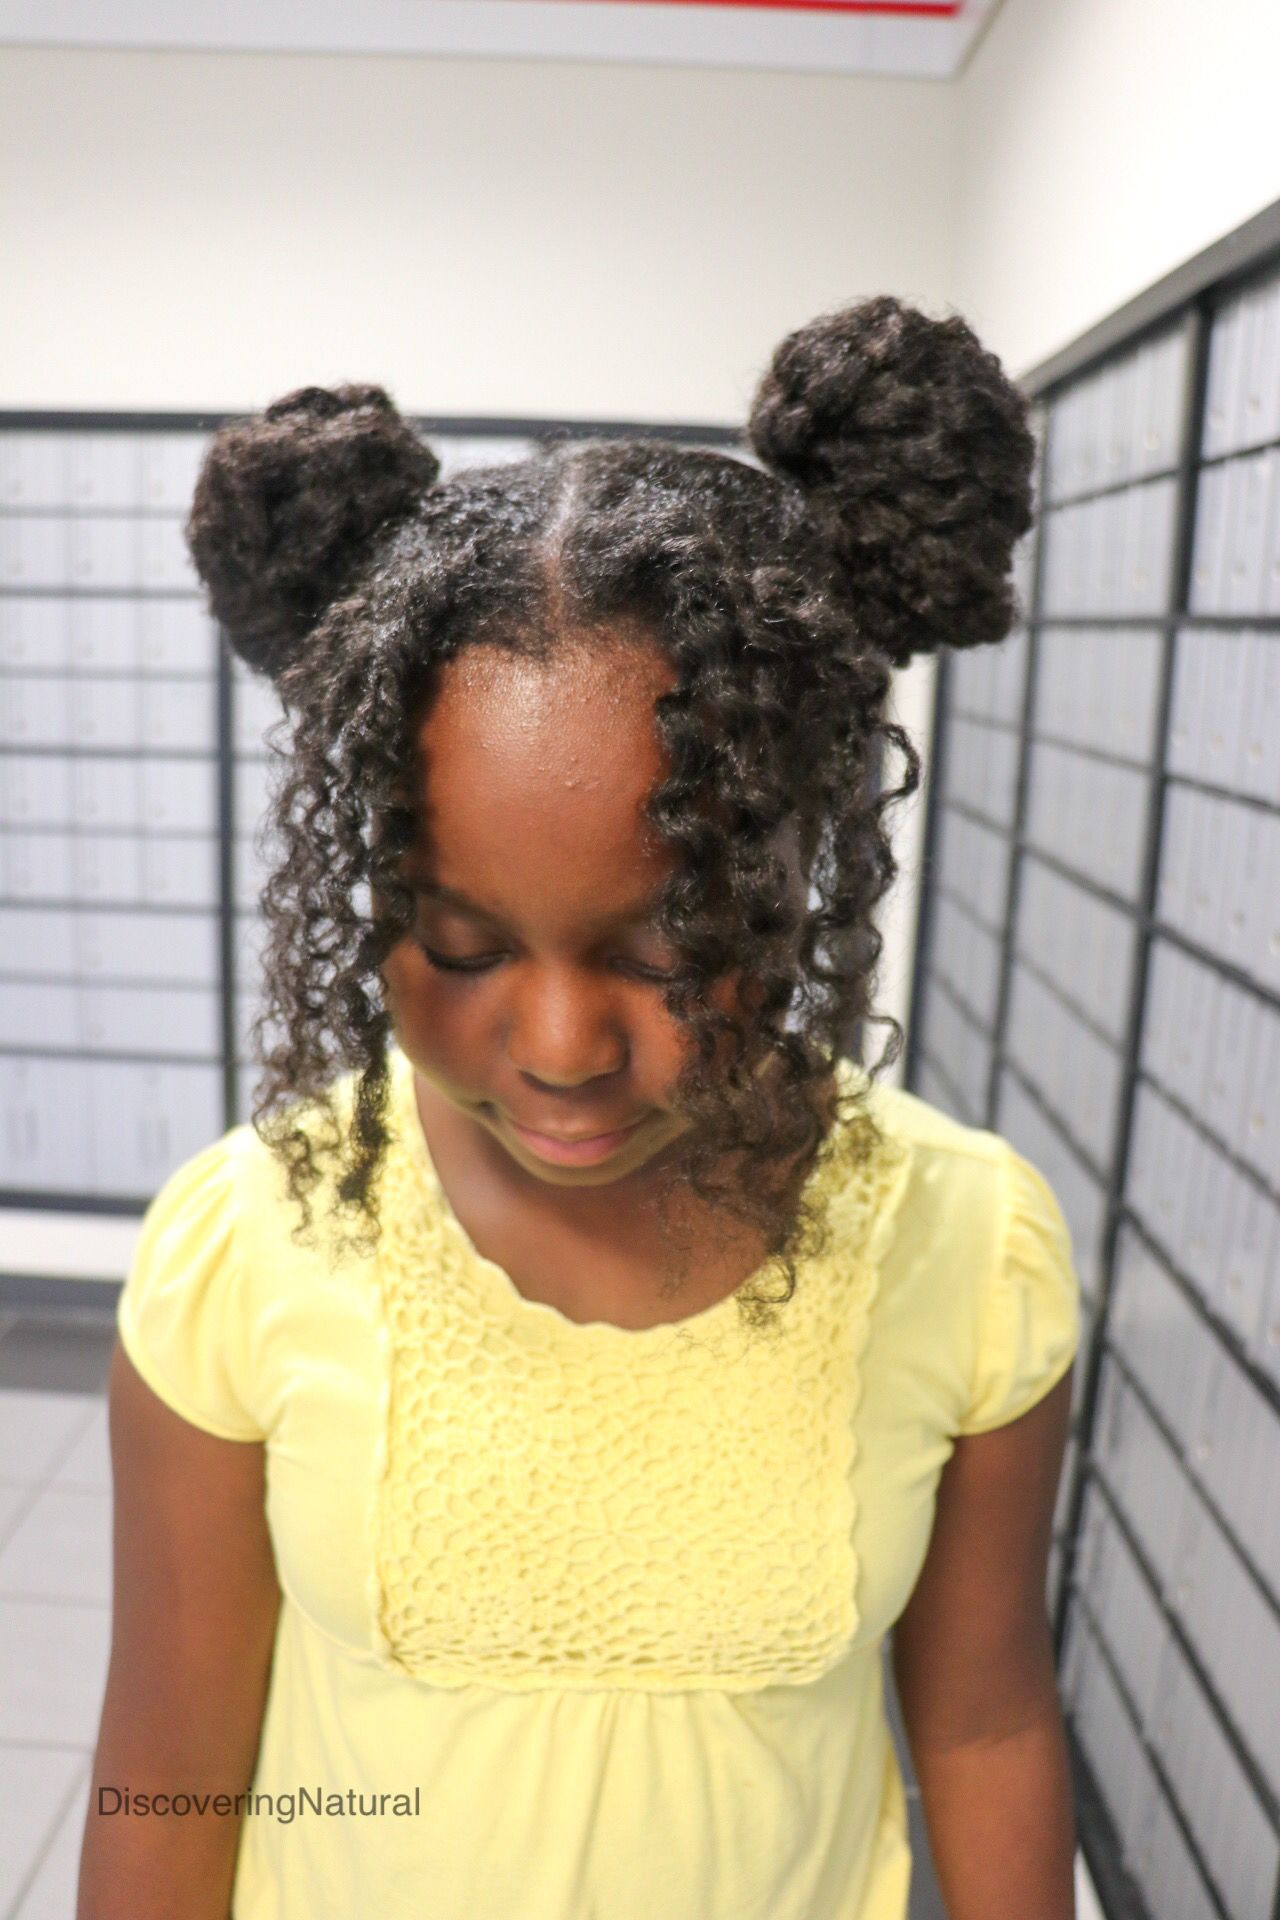 Kids Hairstyles Space Buns Kids Hairstyles Natural Hair Styles Easy Natural Hair Bun Styles